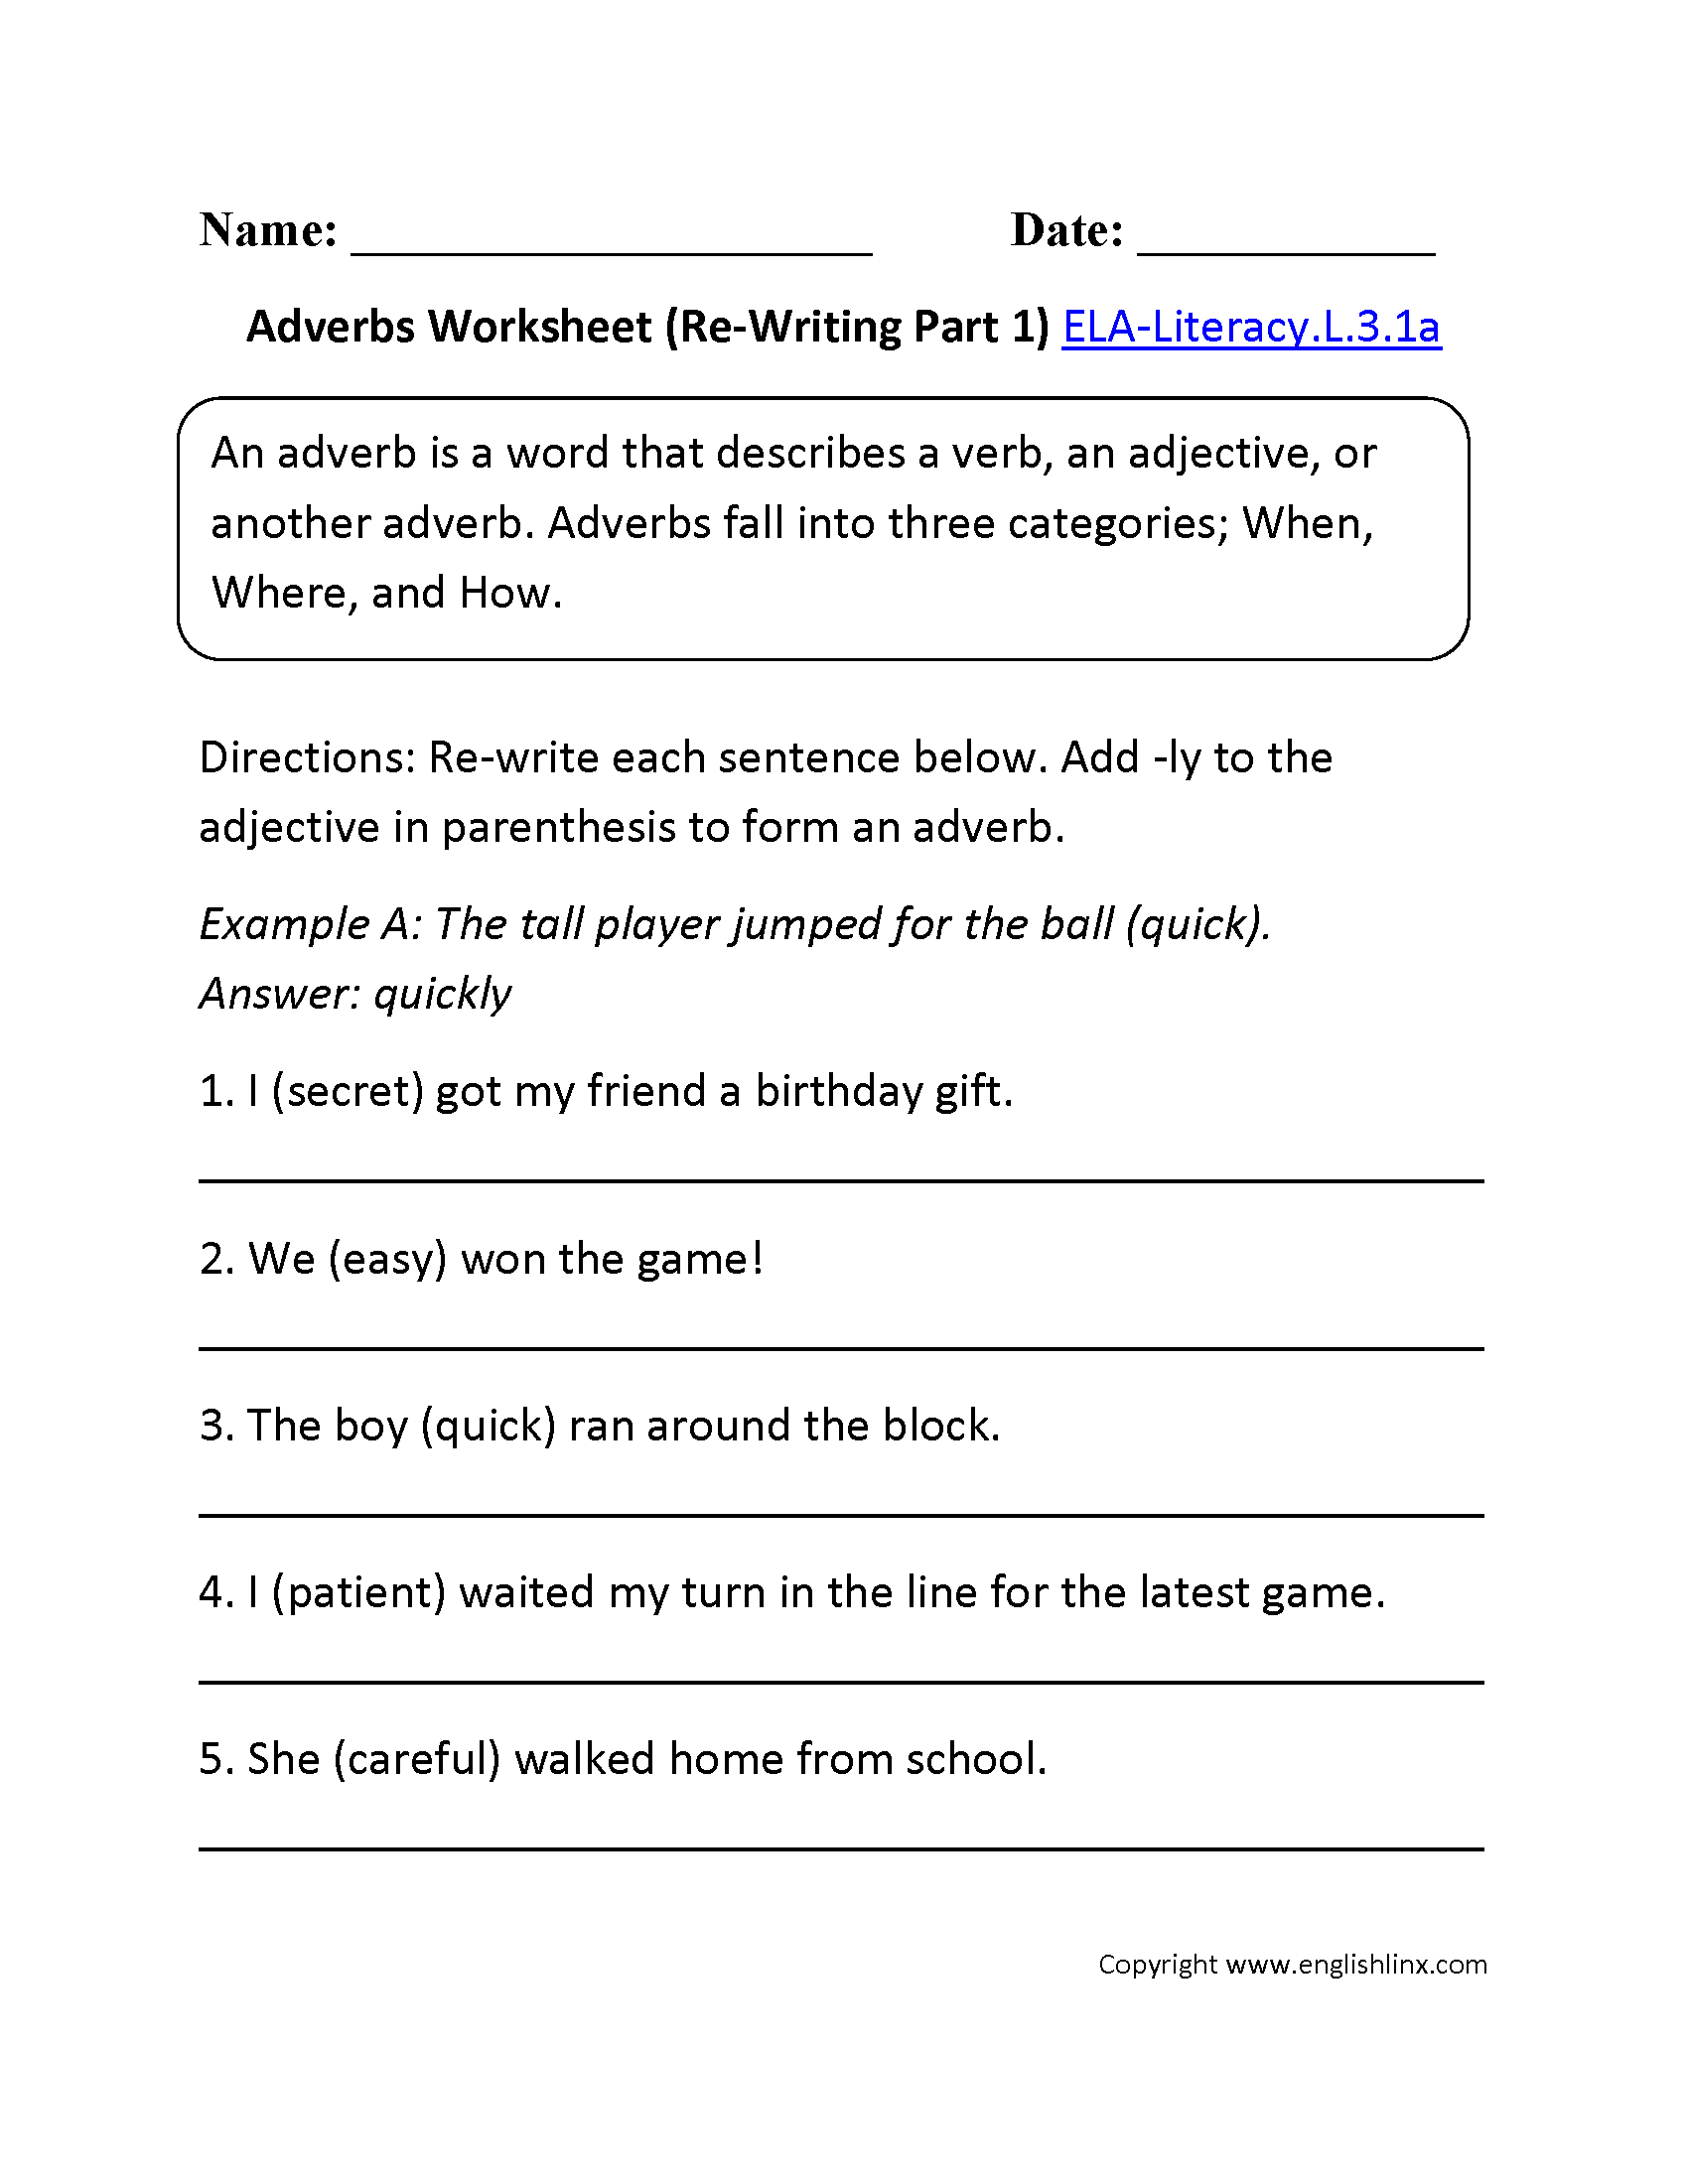 worksheet Fun Language Arts Worksheets coordinating conjunctions worksheet 2 l 3 1 pinterest adjectives ela literacy 1a language worksheet